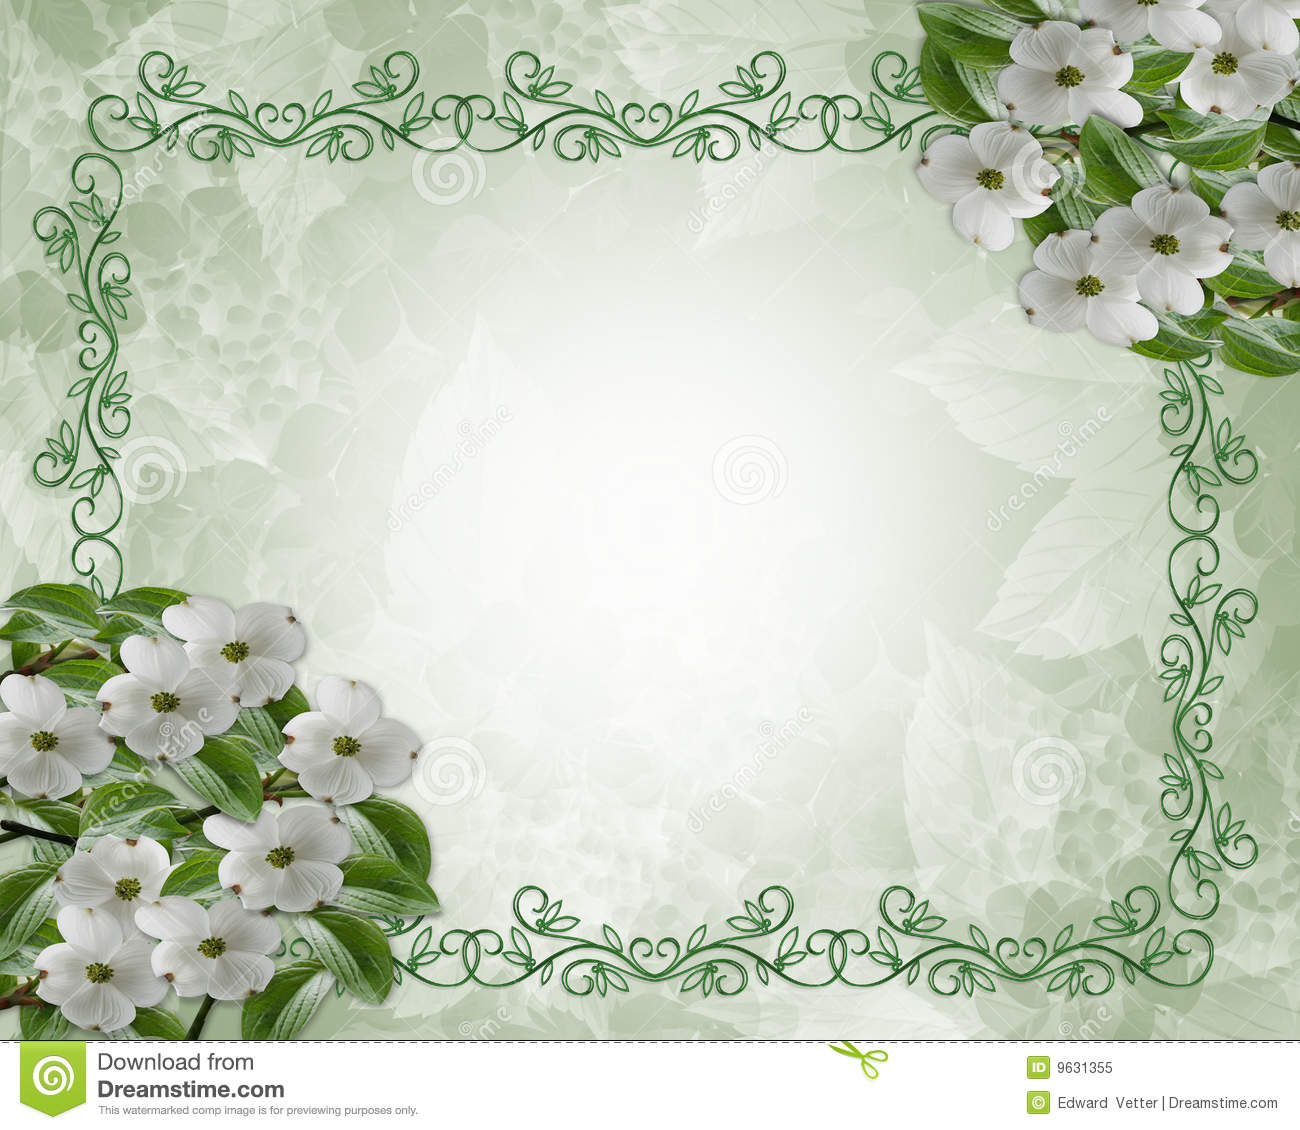 floral wedding border dogwood stock illustration illustration of